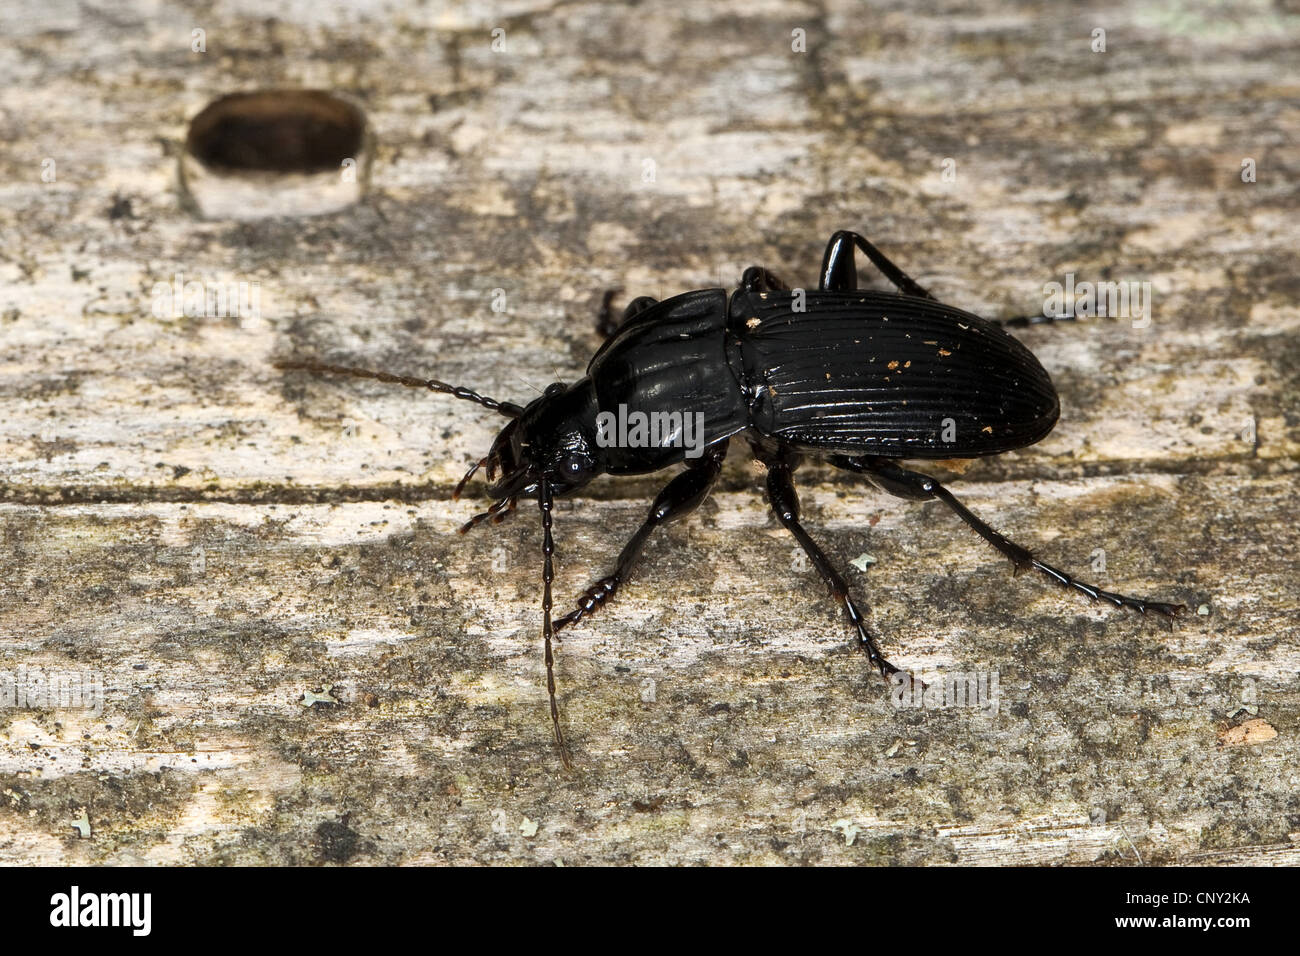 Parallel-sided ground beetle (Abax parallelepipedus), sitting on wood, Germany - Stock Image